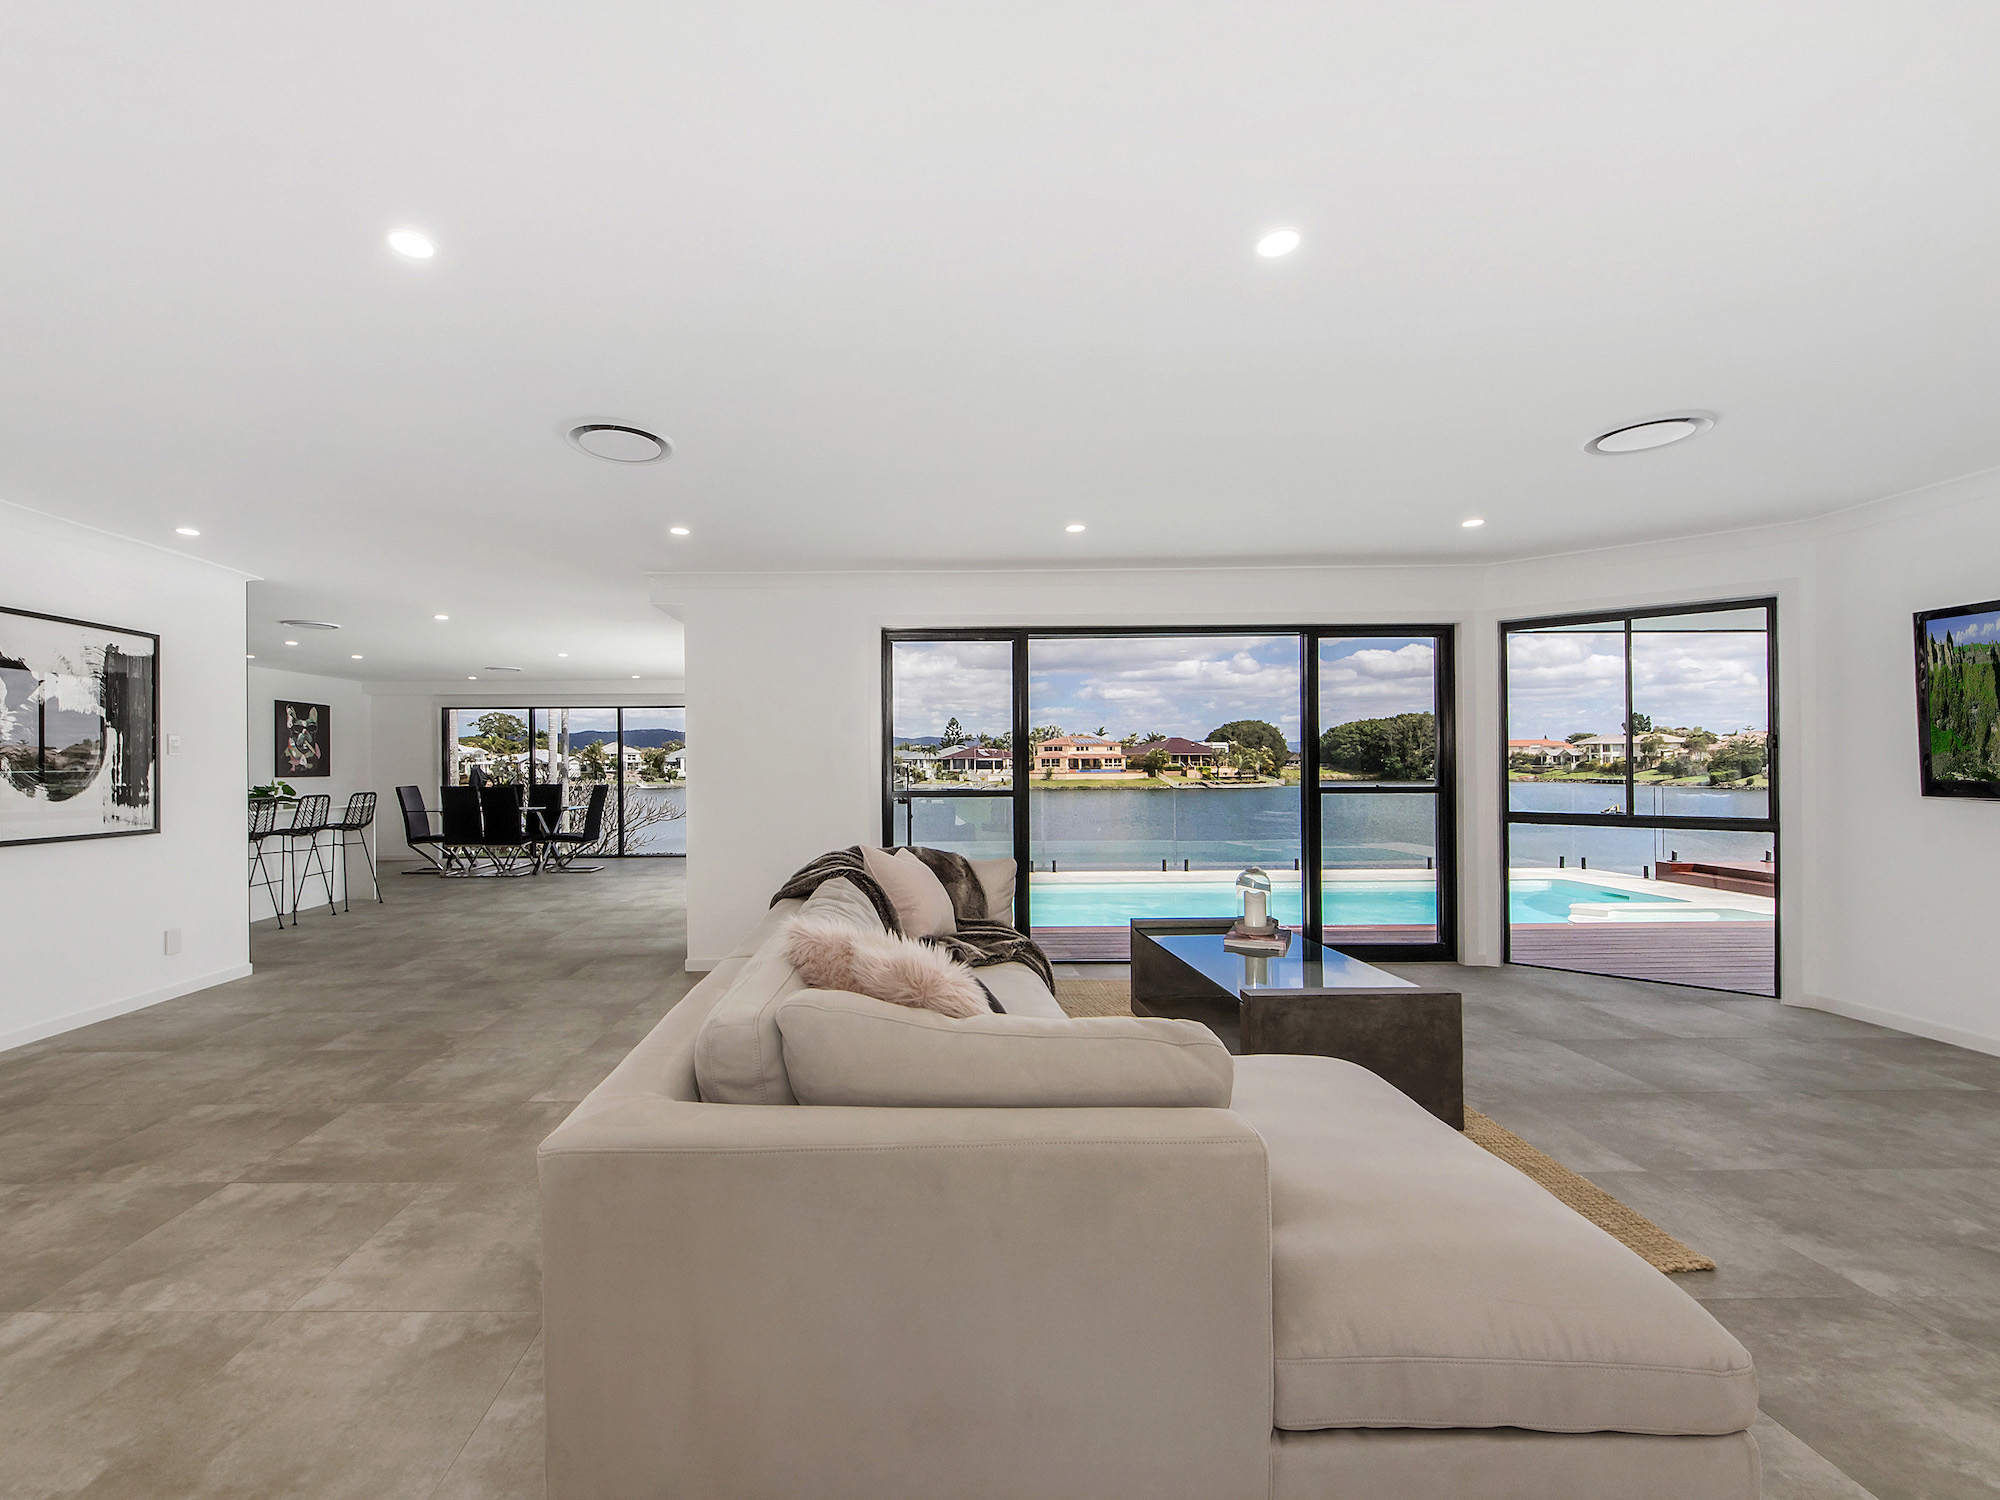 Open plan living dining and kitchen space surrounding the tiled pool